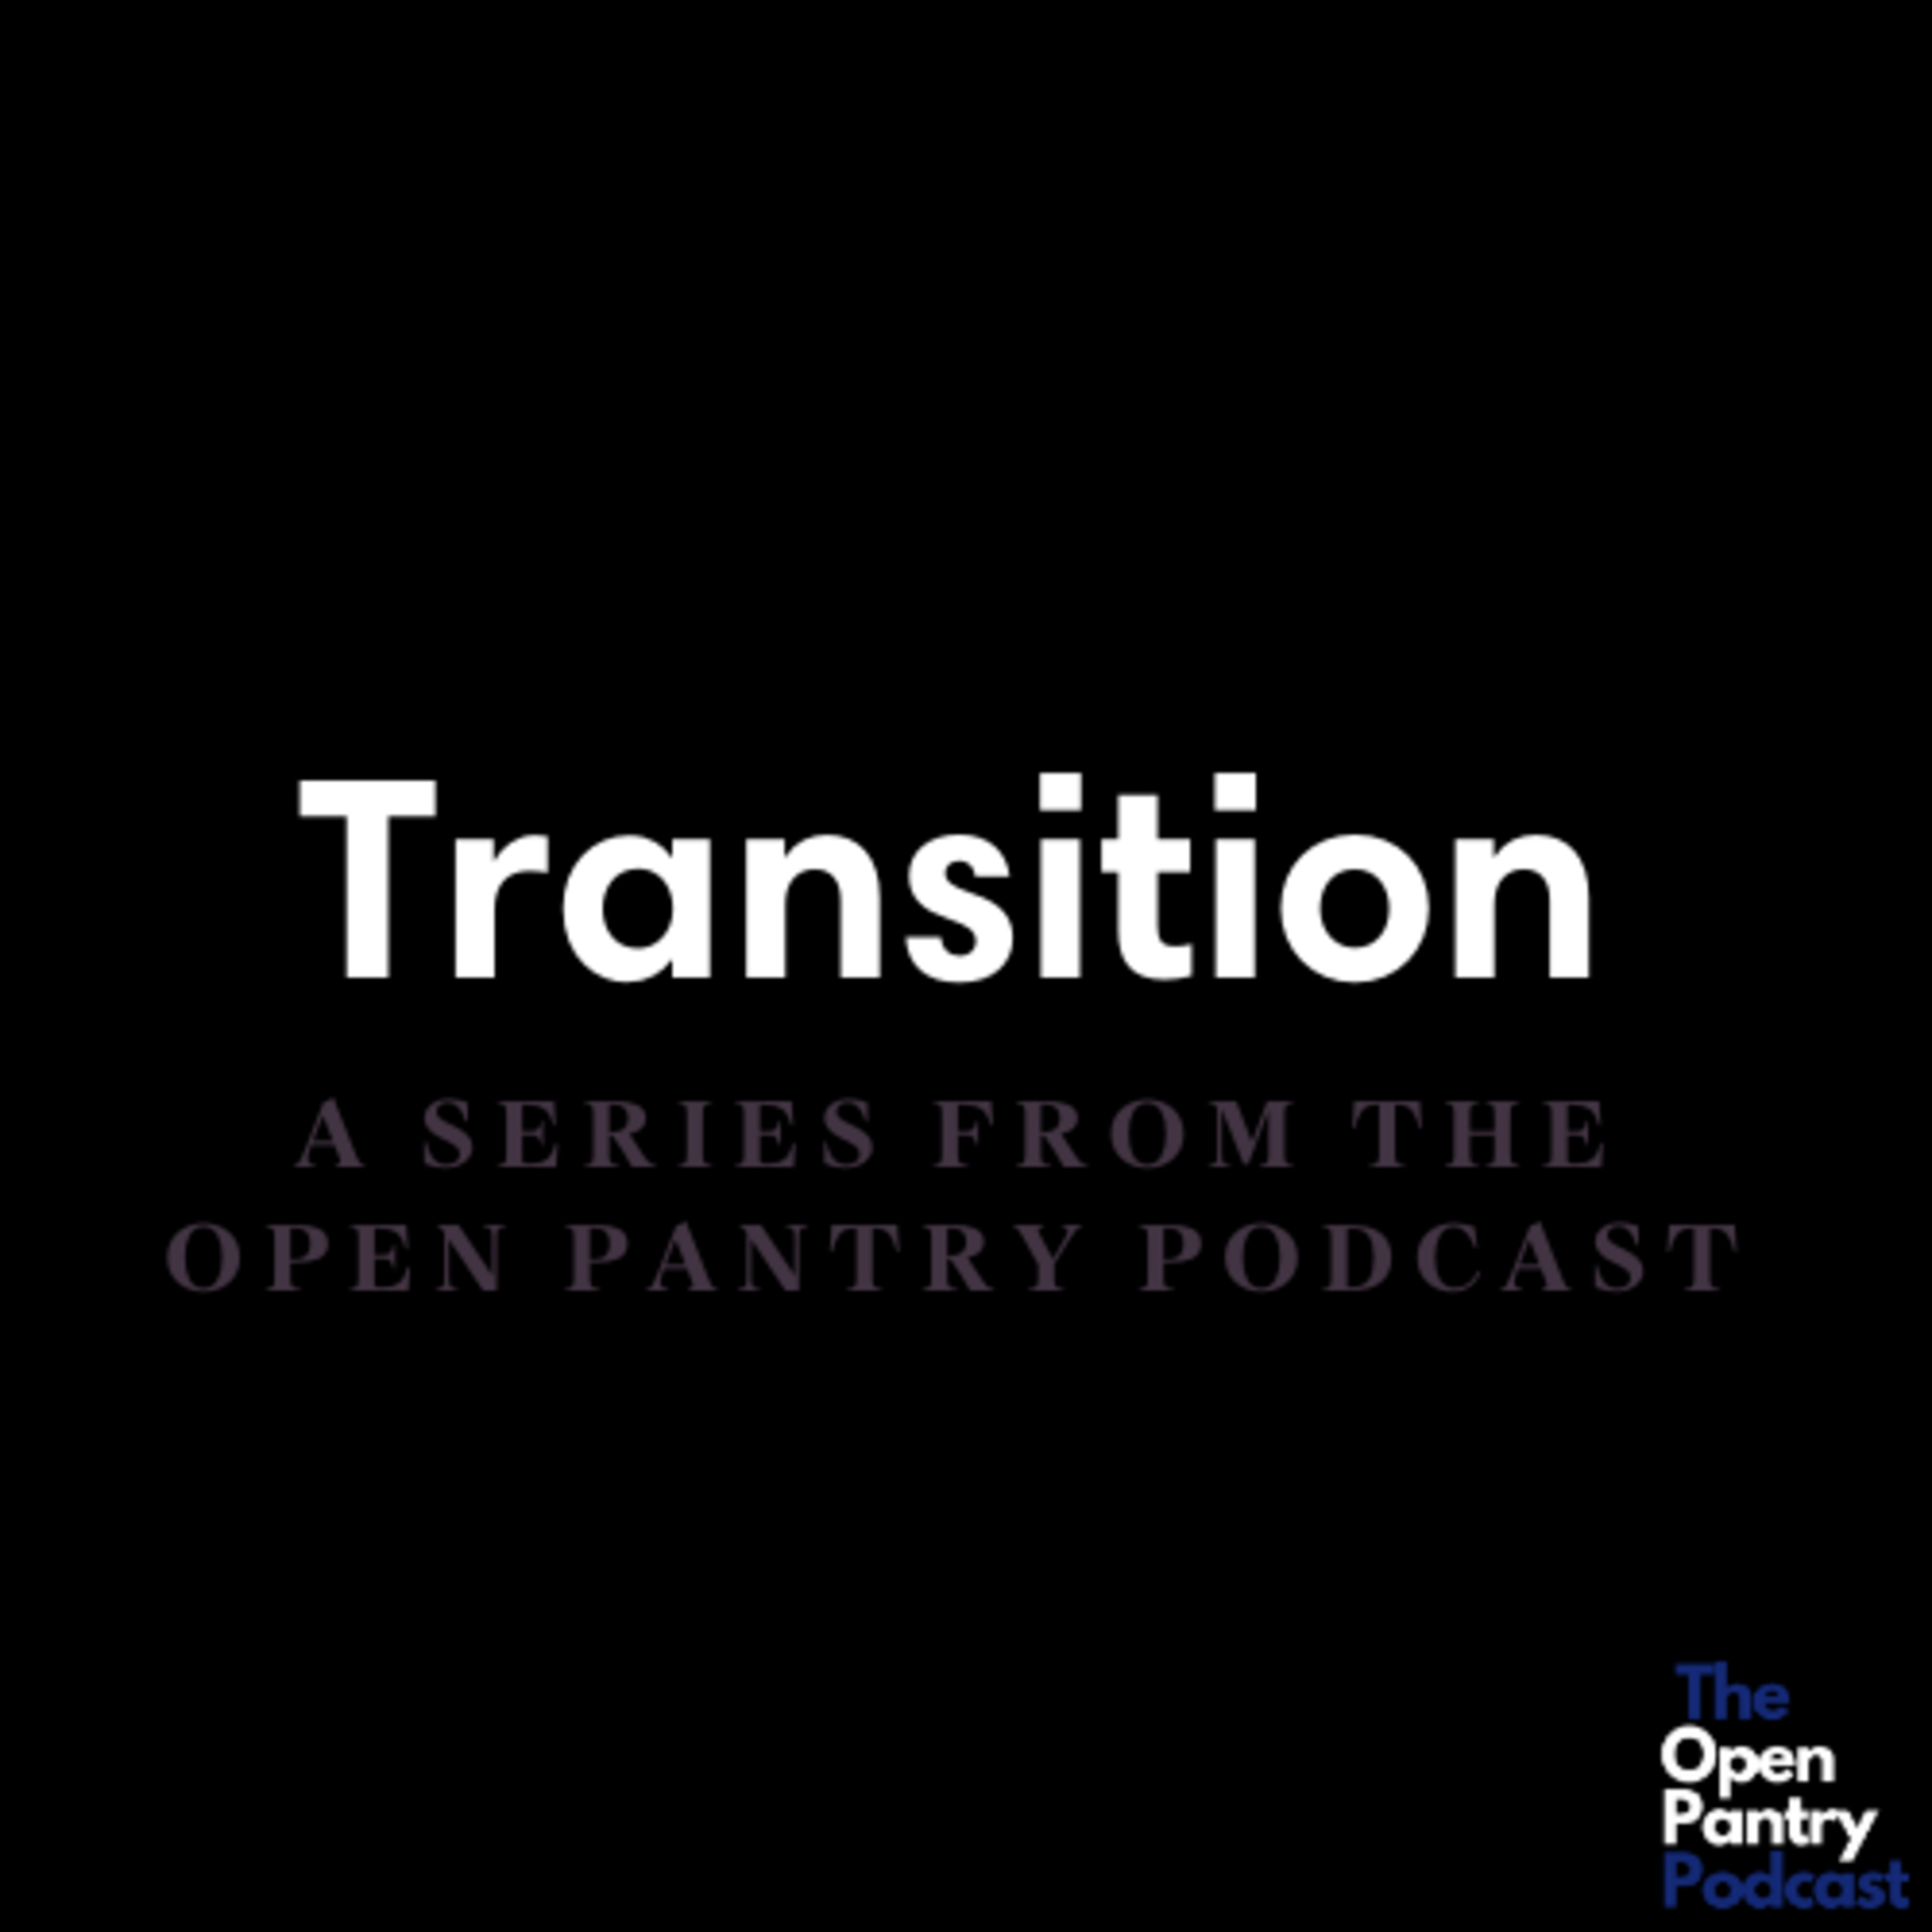 Episode 81 - How supporting independent restaurant with strategy will support the greater industry with Elizabeth Tilton and Jessica Abell from Oyster Sunday